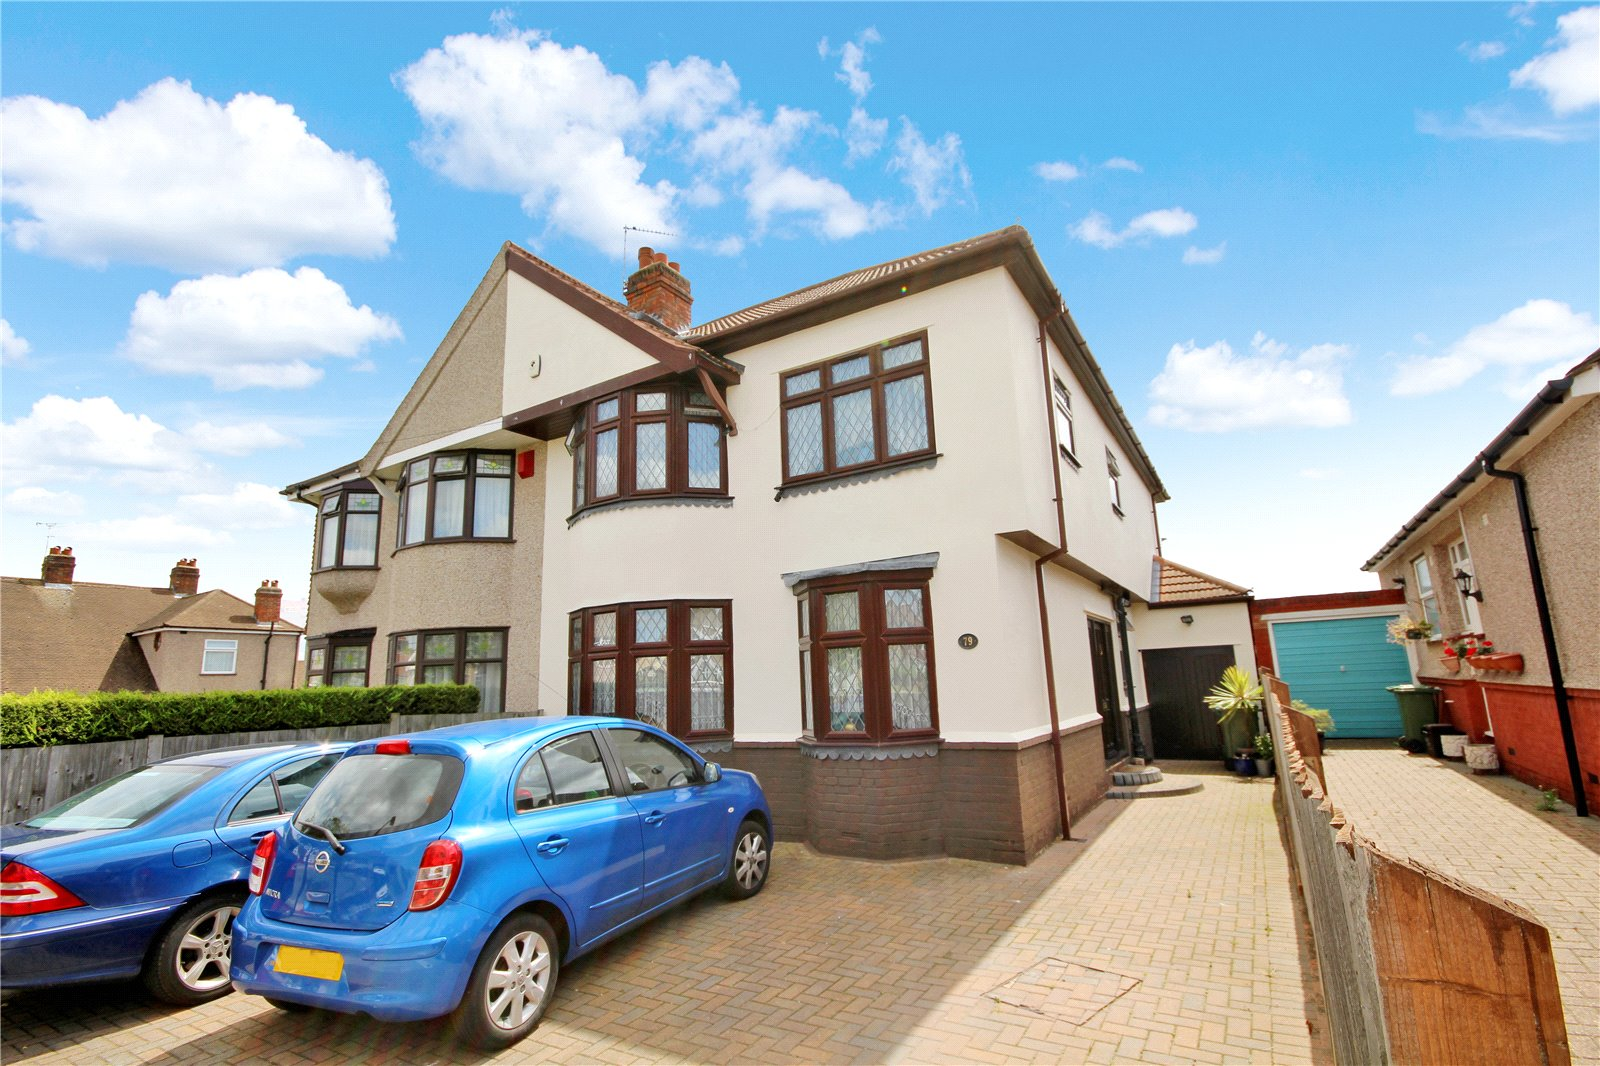 Falconwood Avenue, South Welling, Kent, DA16